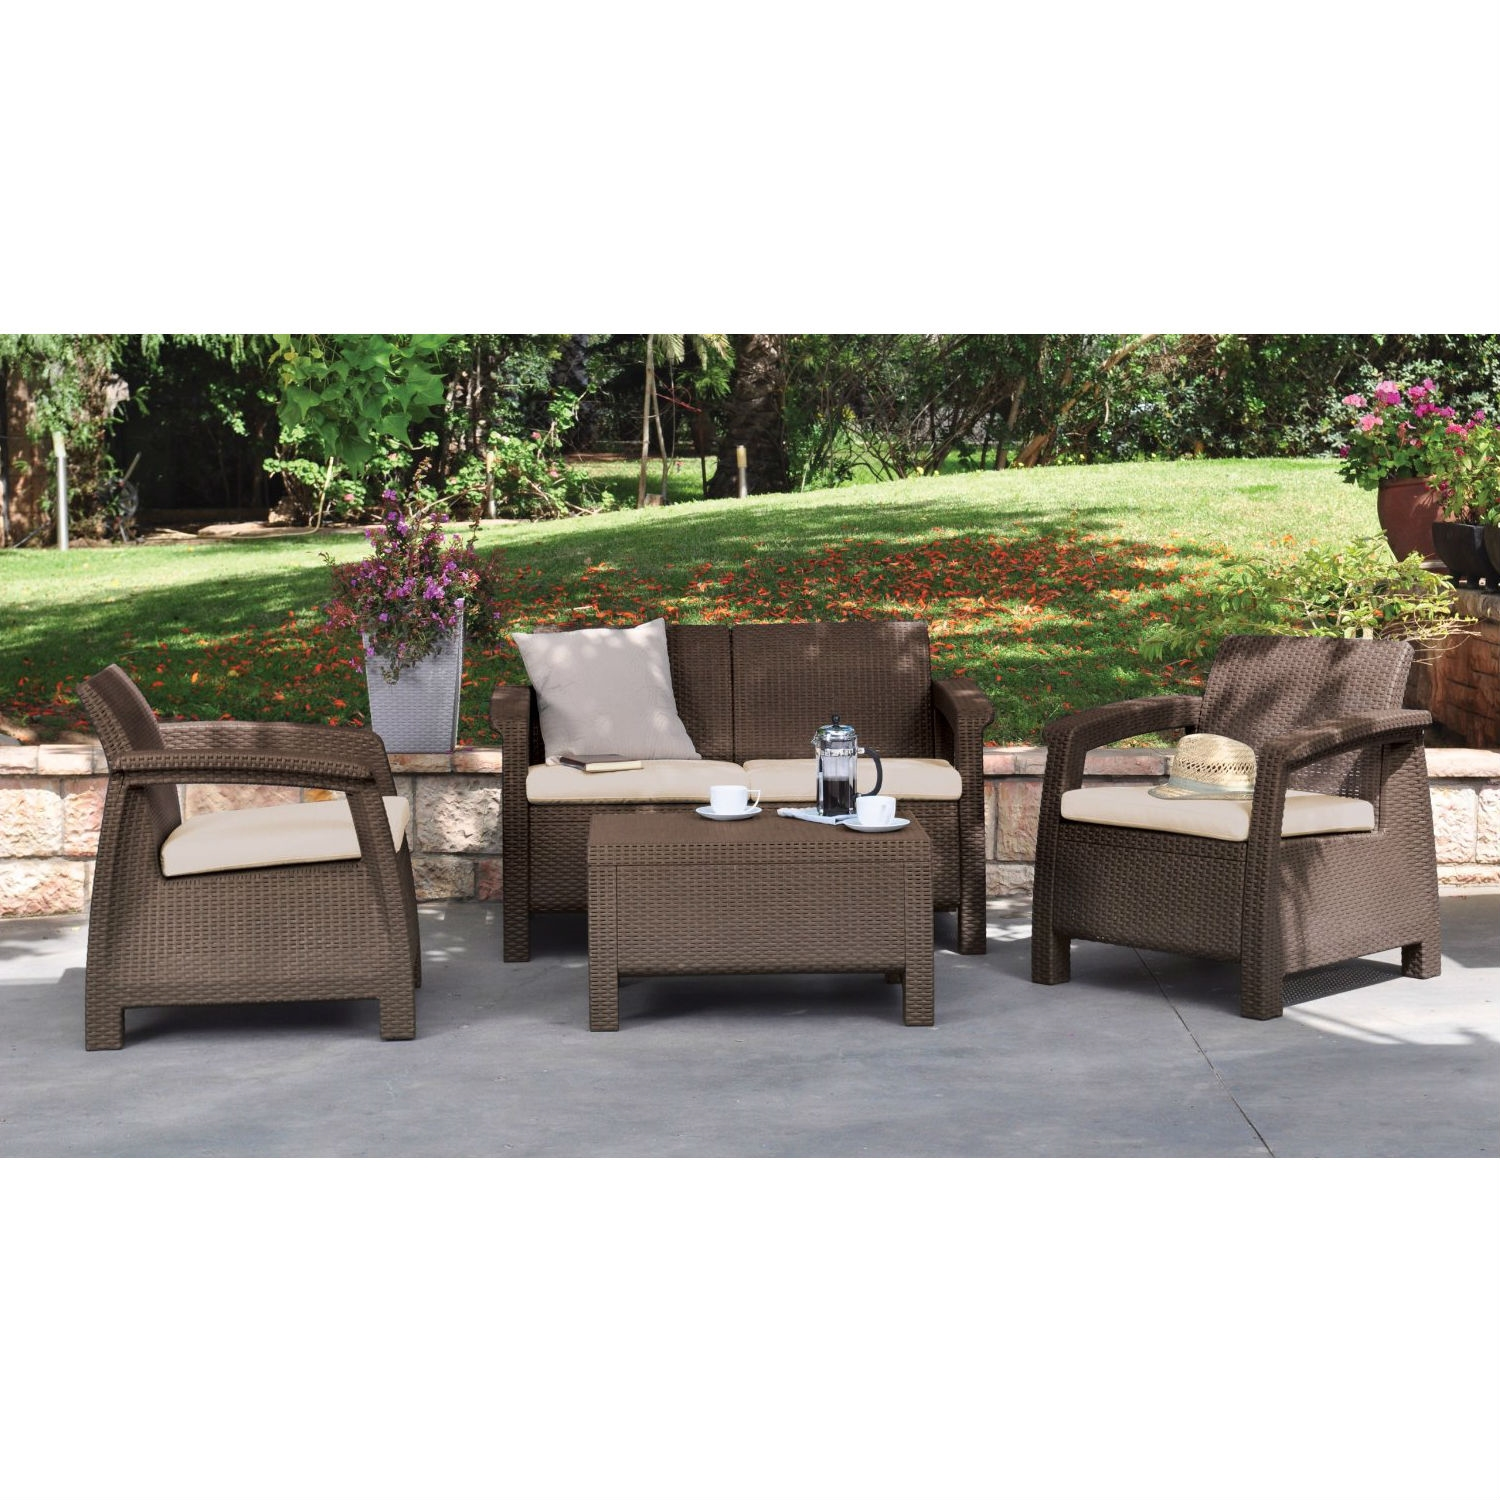 Modern Patio Table Ottoman in Brown Outdoor Weather Resistant